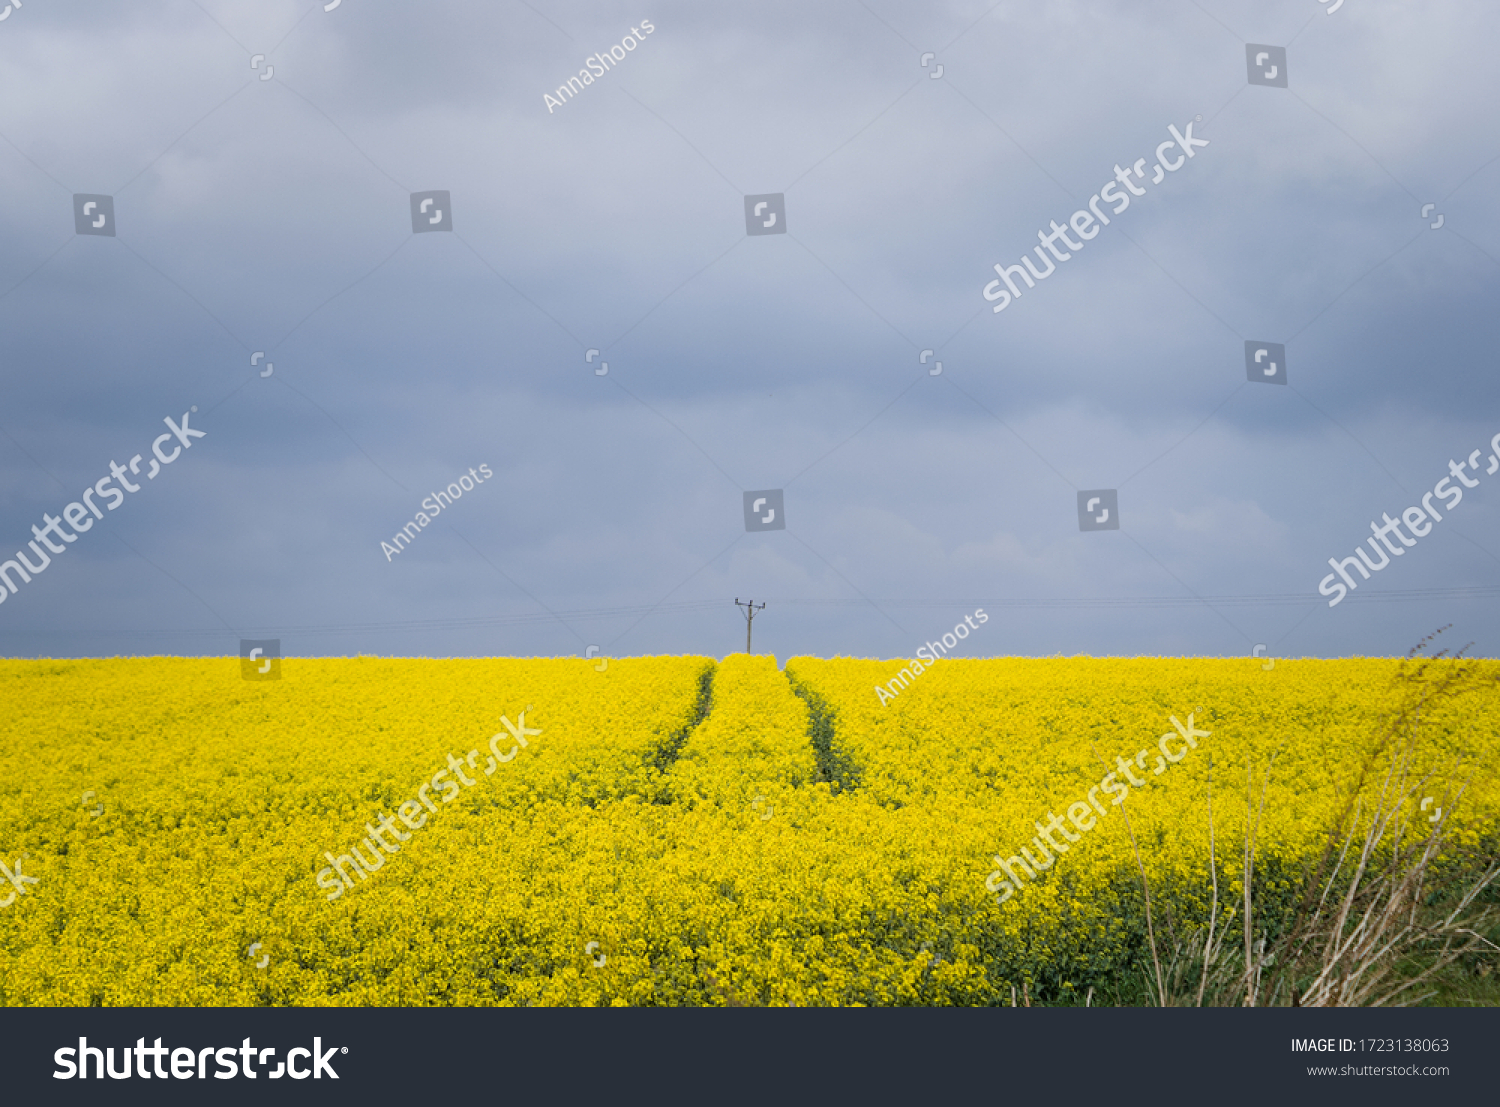 stock-photo-yellow-crop-field-blooming-r